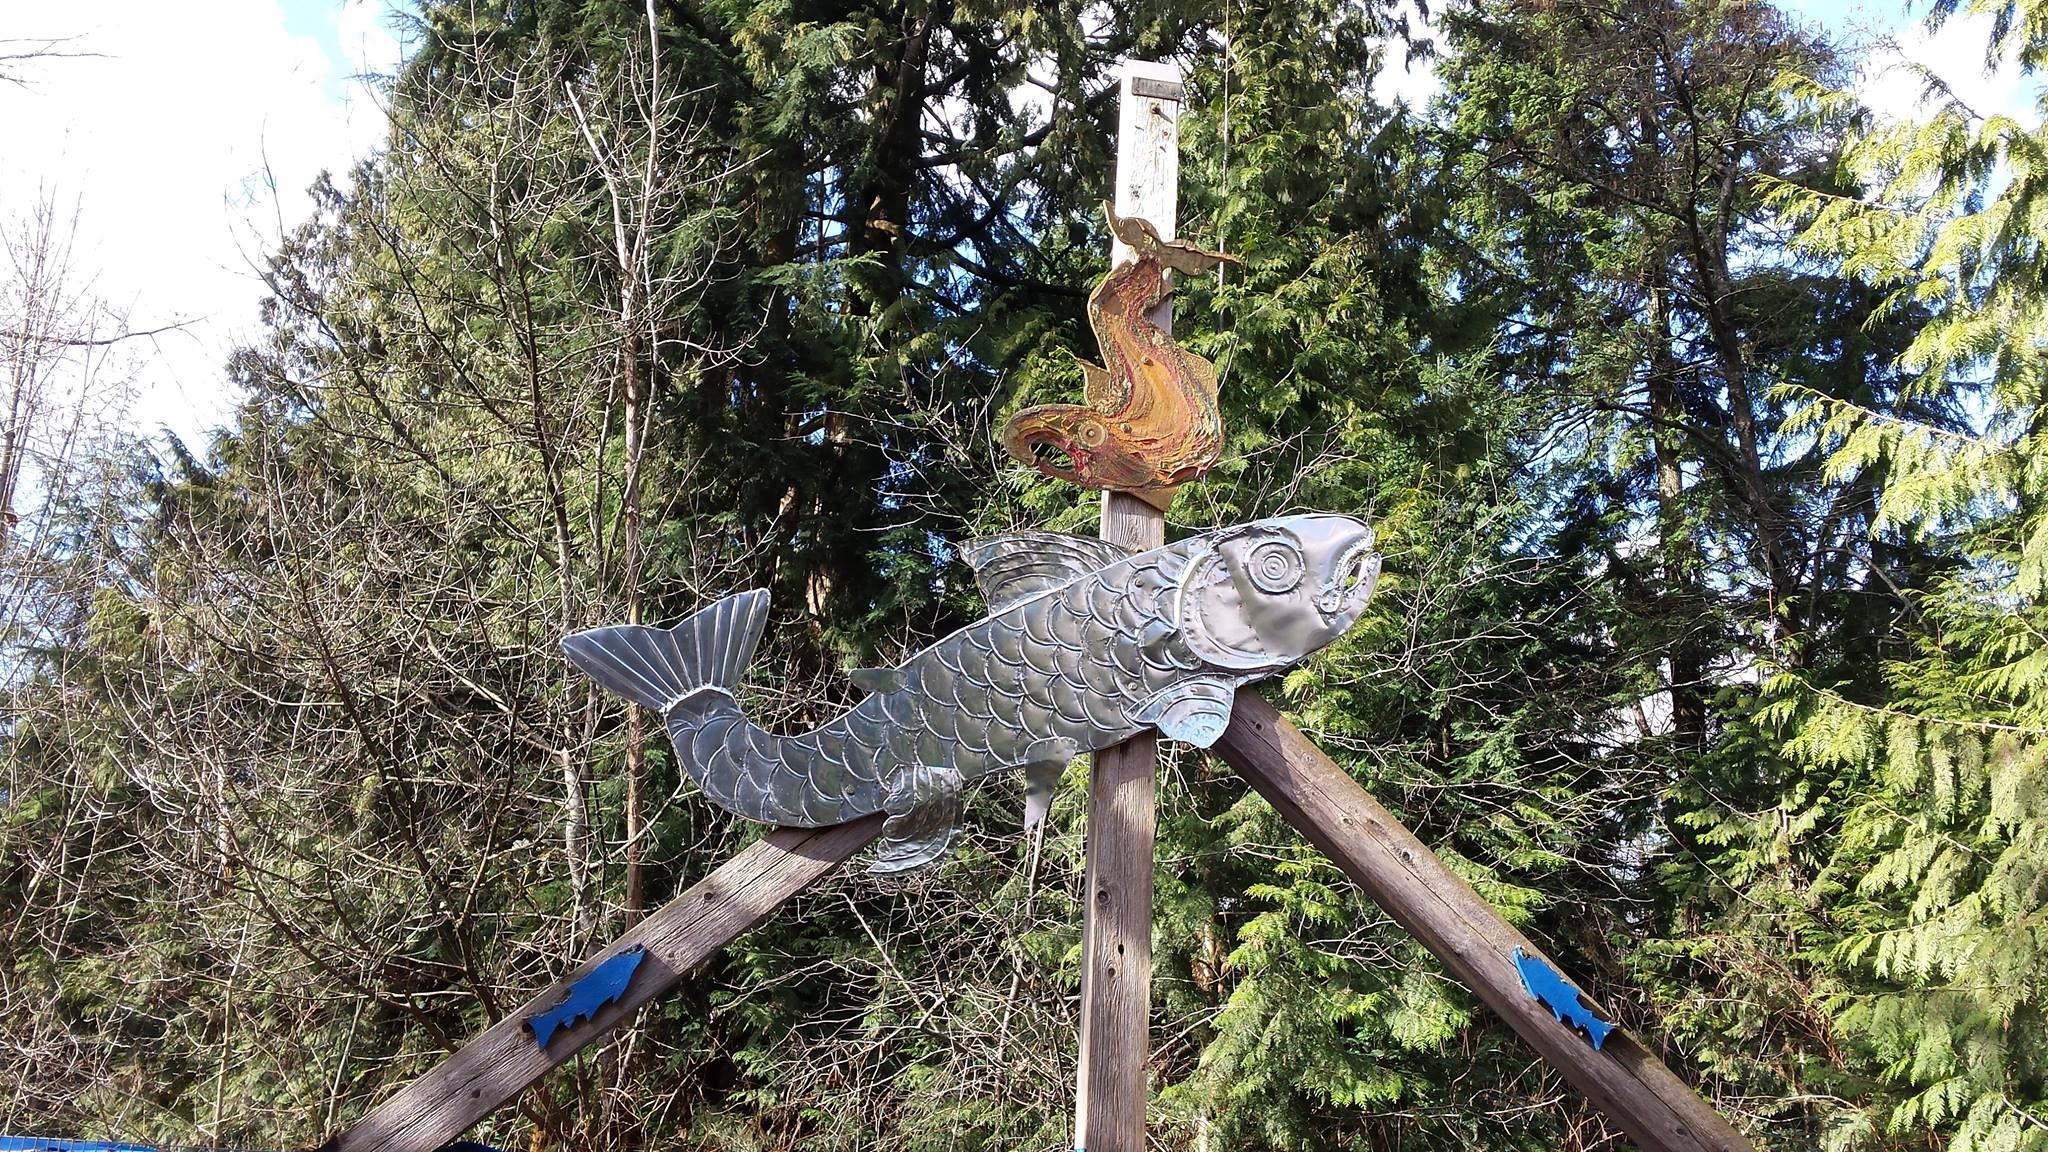 High above the rearing pond by Hoy Creek is two prominent metal art fixtures by Patricia Gaspar.